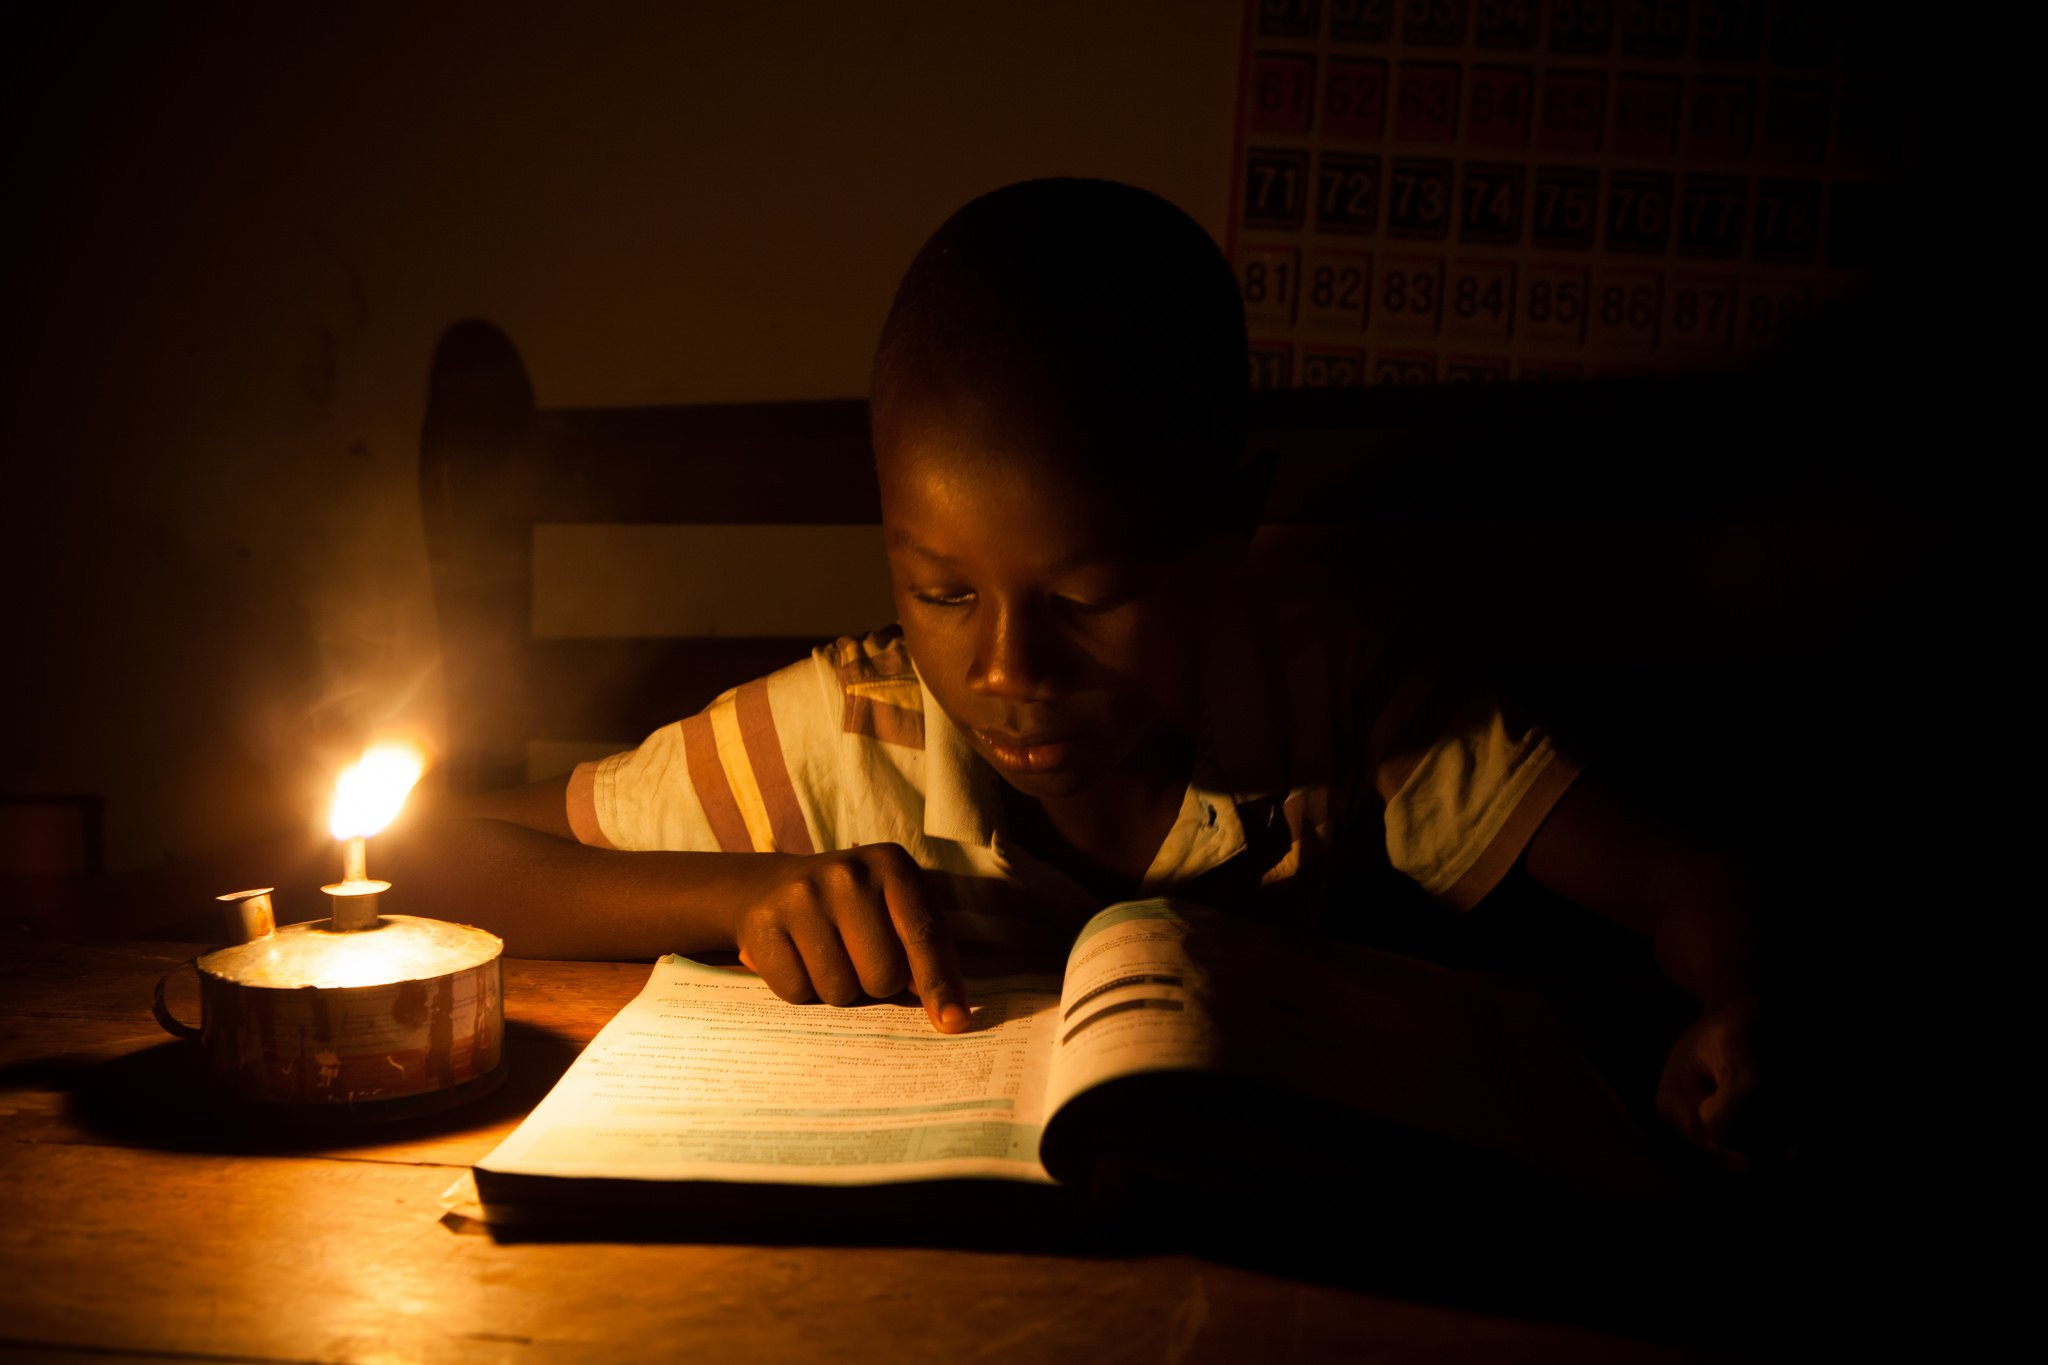 Shedding Light on the Poor's Access to Electricity